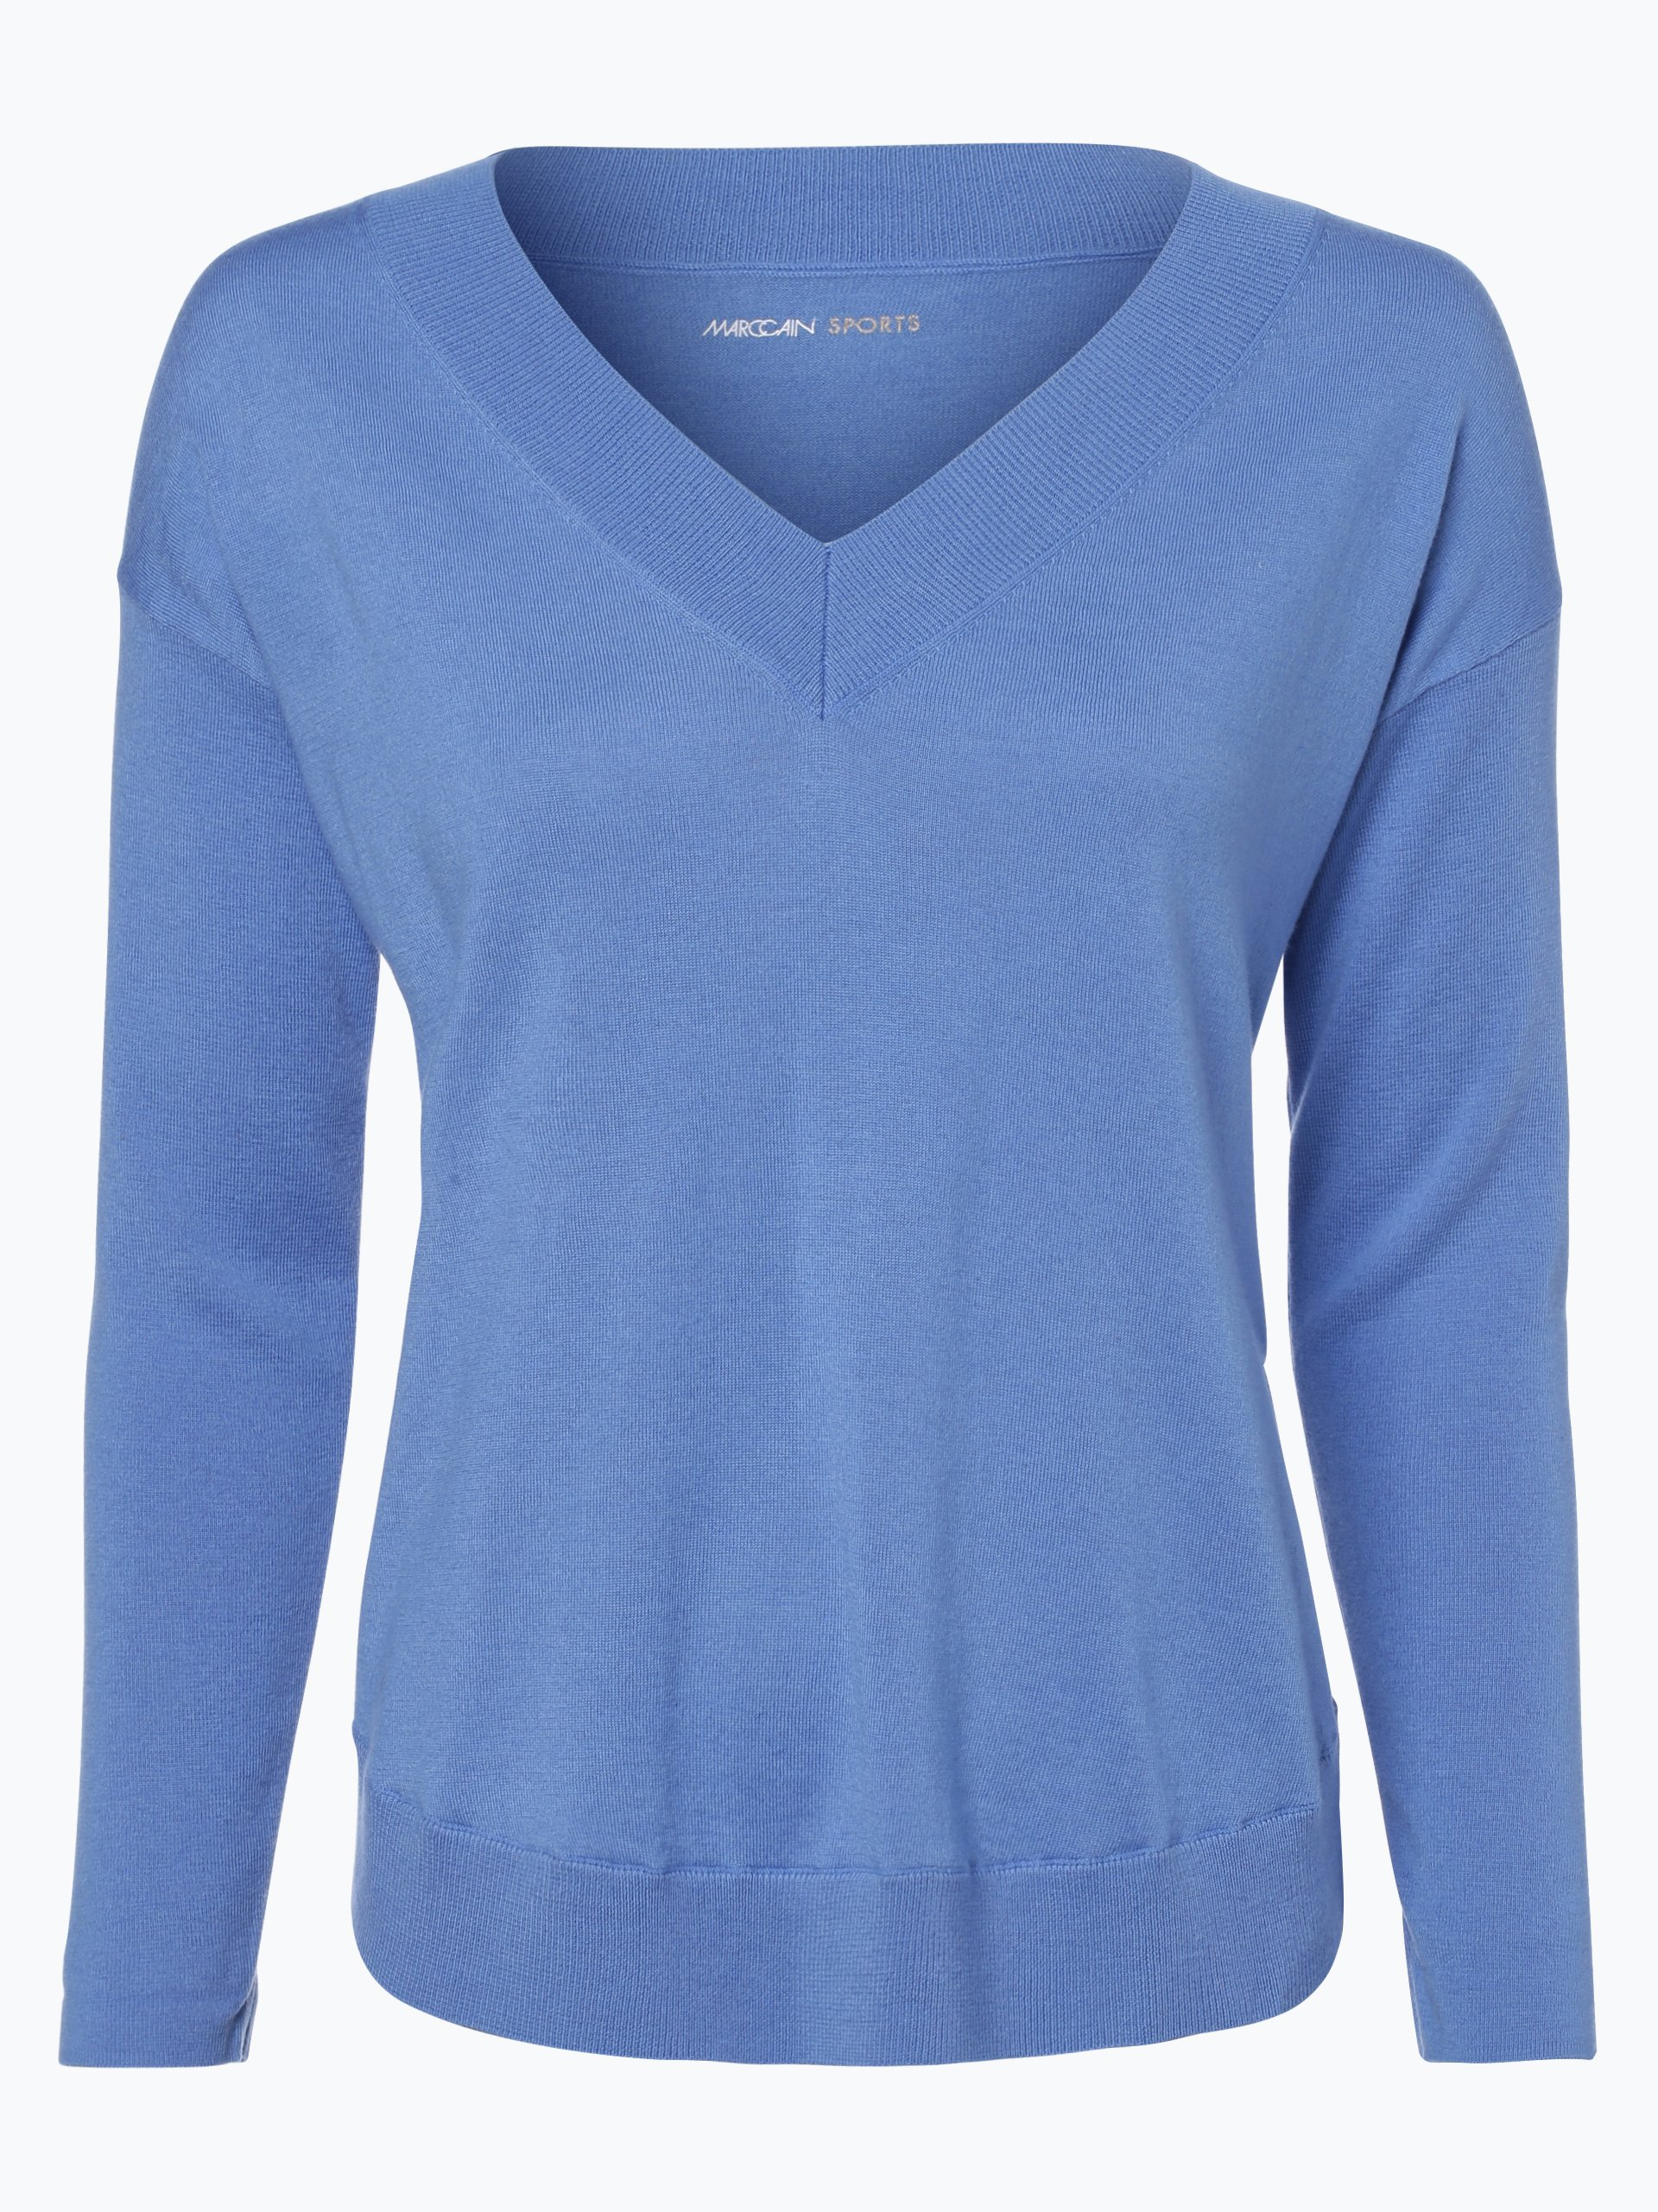 marc cain sports damen pullover mit cashmere anteil royal blau uni online kaufen vangraaf com. Black Bedroom Furniture Sets. Home Design Ideas